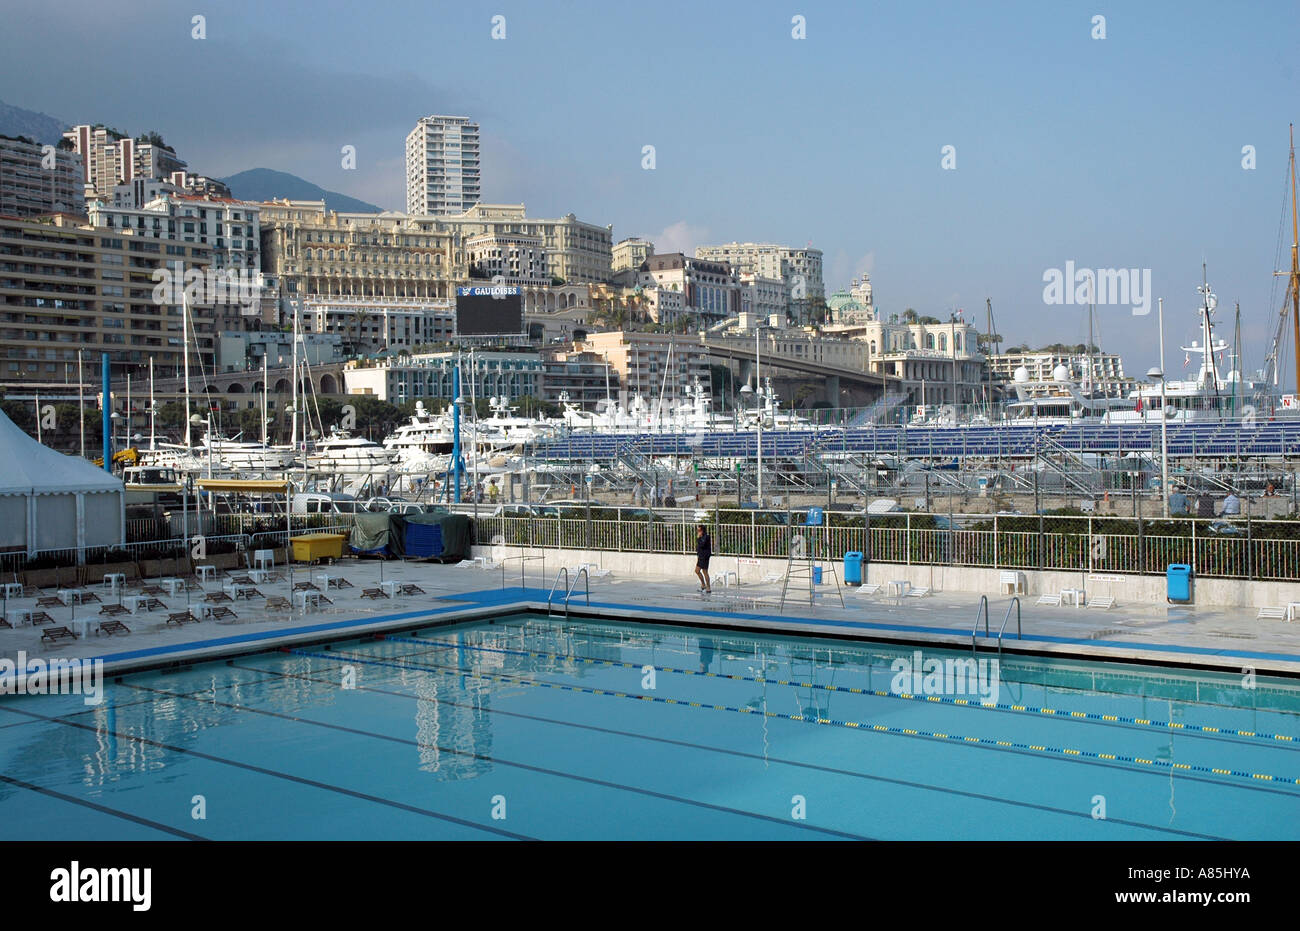 Monaco's famous swimming pool by the Grand Prix track and harbour, Port Hercule, Monaco-Ville, Monaco - Stock Image